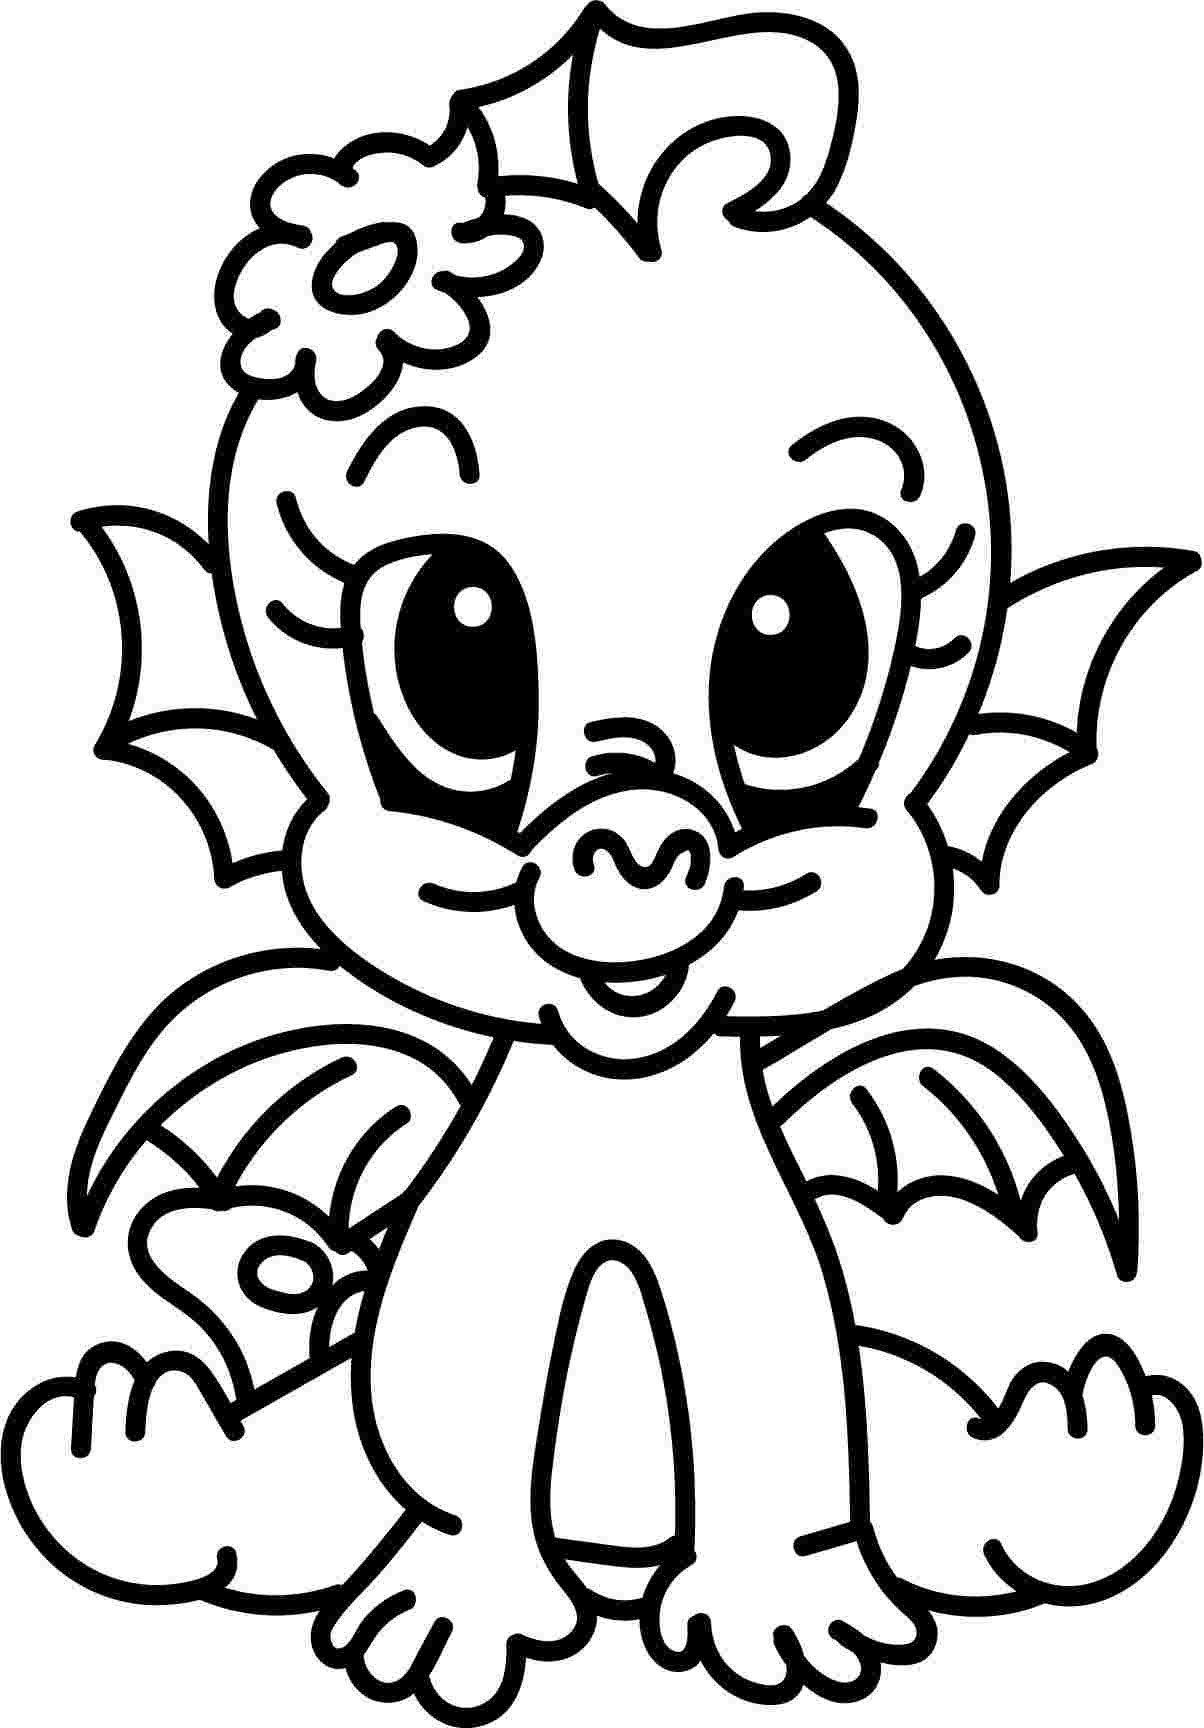 Coloring Pages for Kids Dragons Coloring Pages Colouring ...